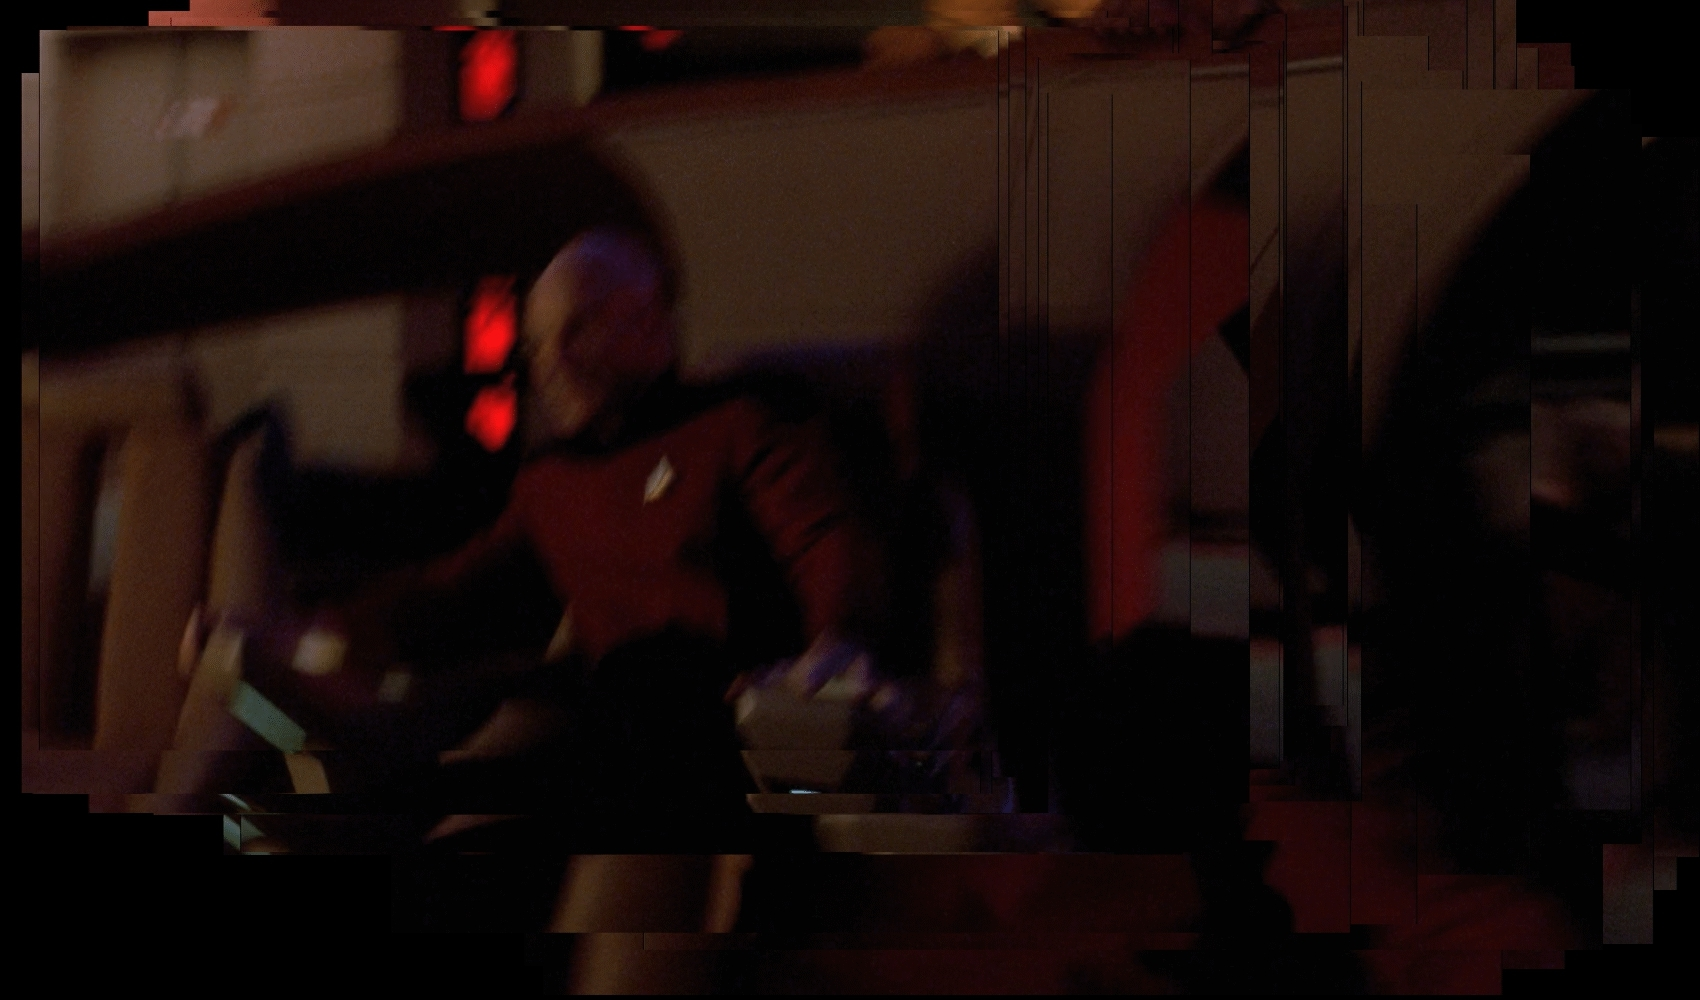 OldSchoolCool, startrekstabilized, TNG 5x18 - Cause and Effect. I've tried hard. (reddit) GIFs